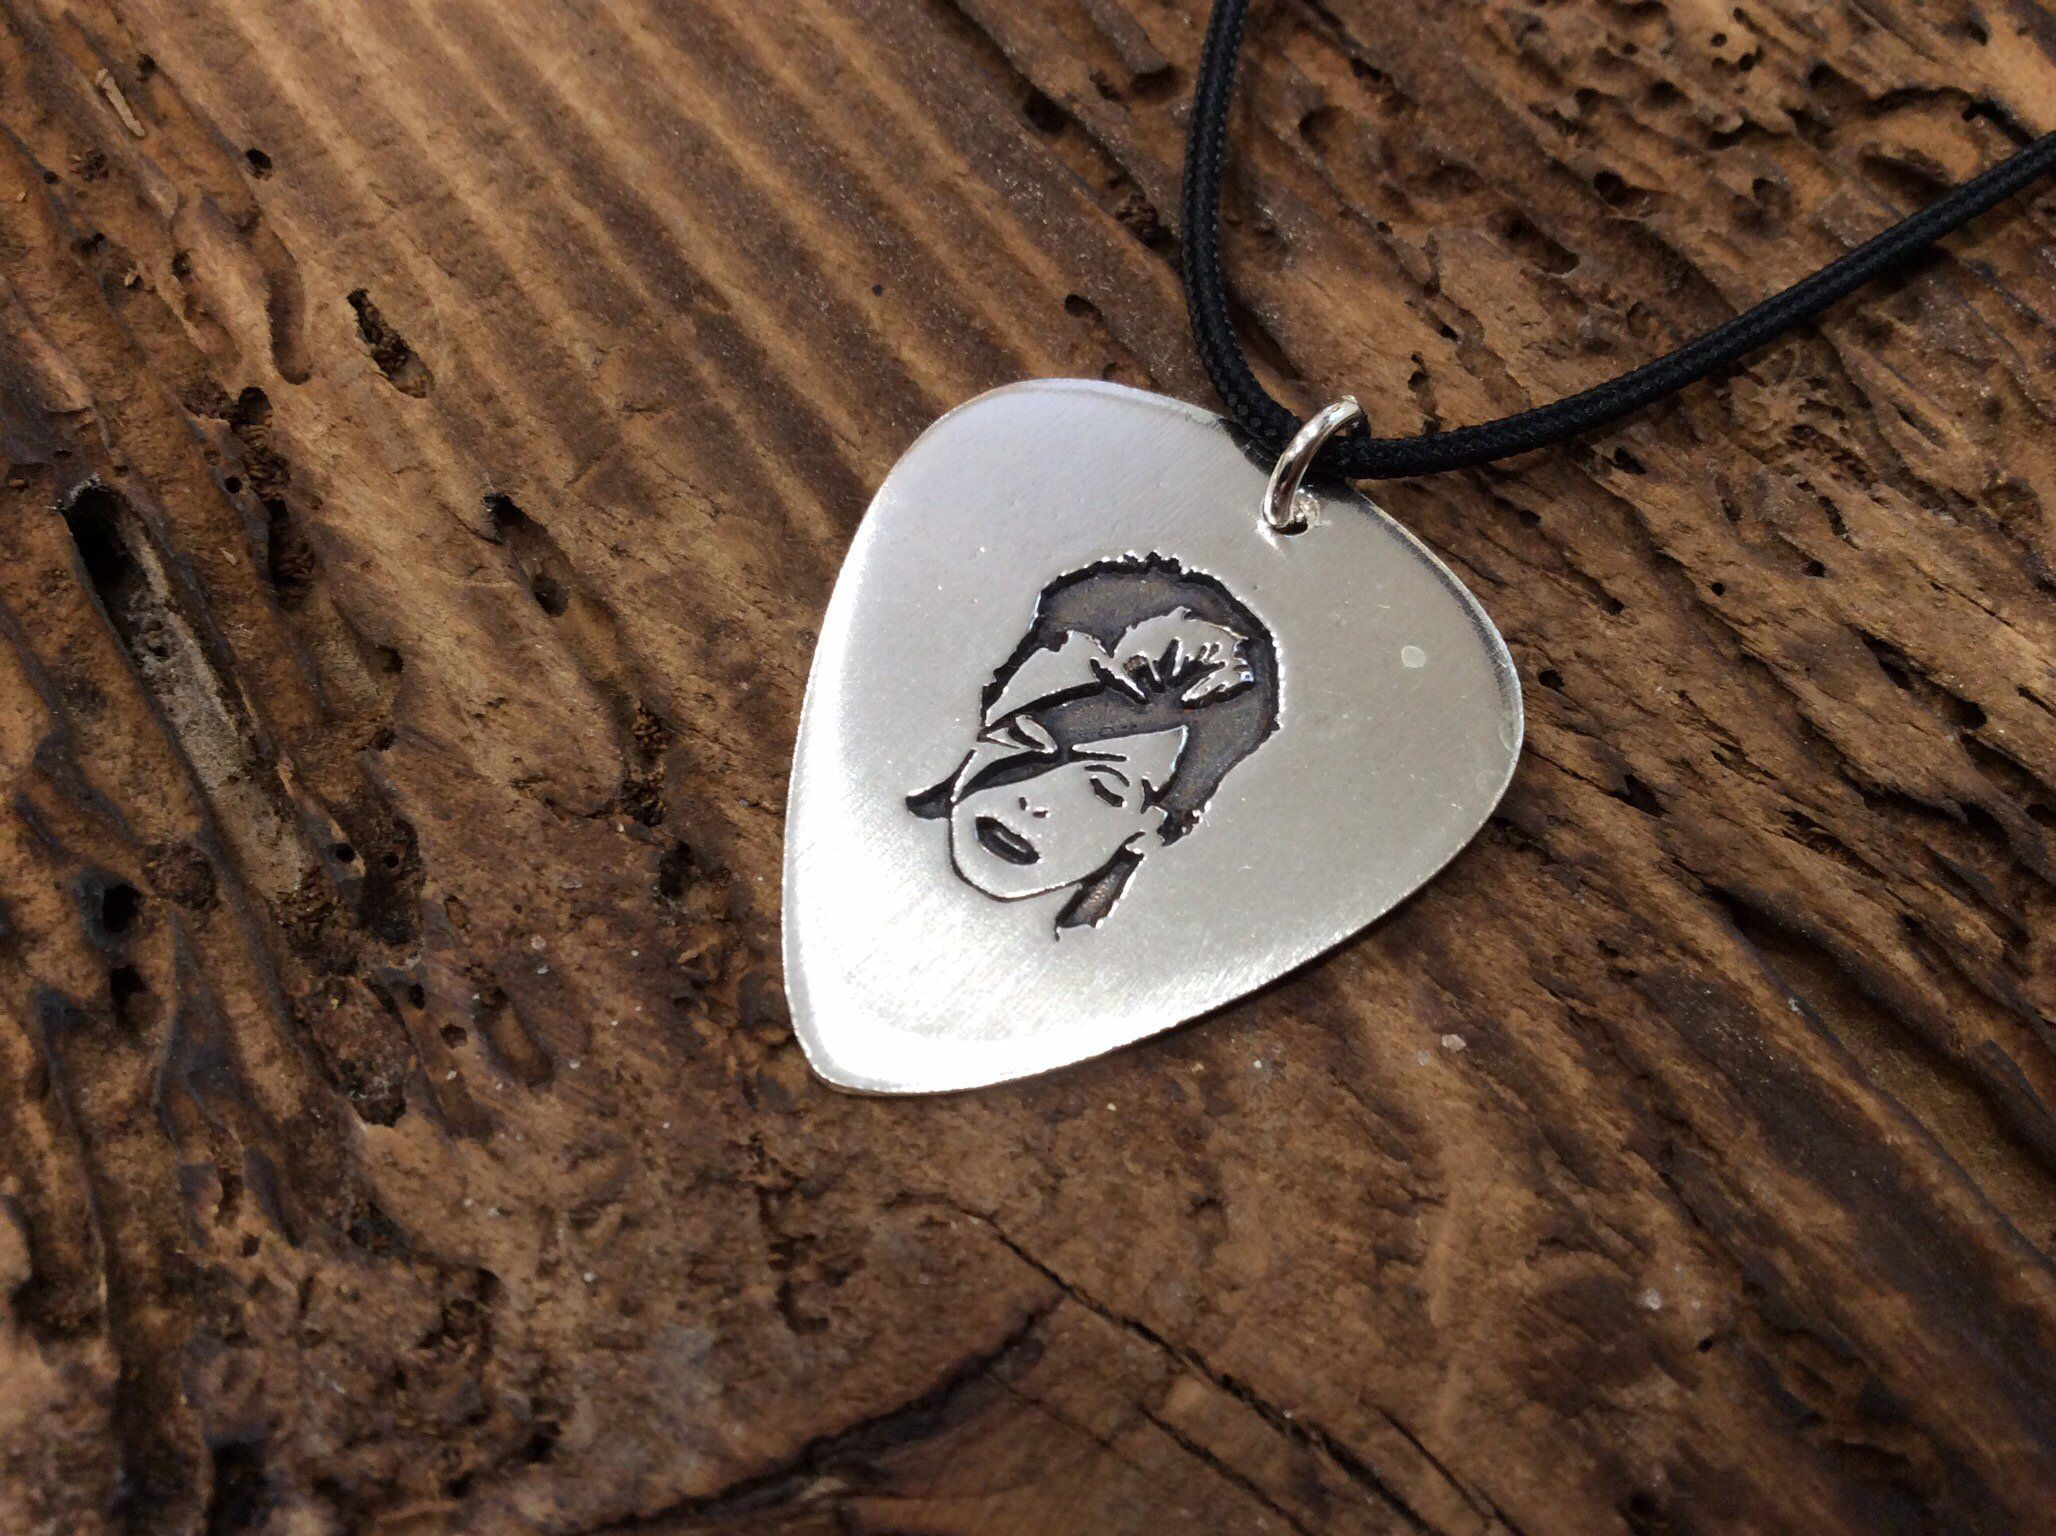 David bowie ziggy stardust personalized gift for men